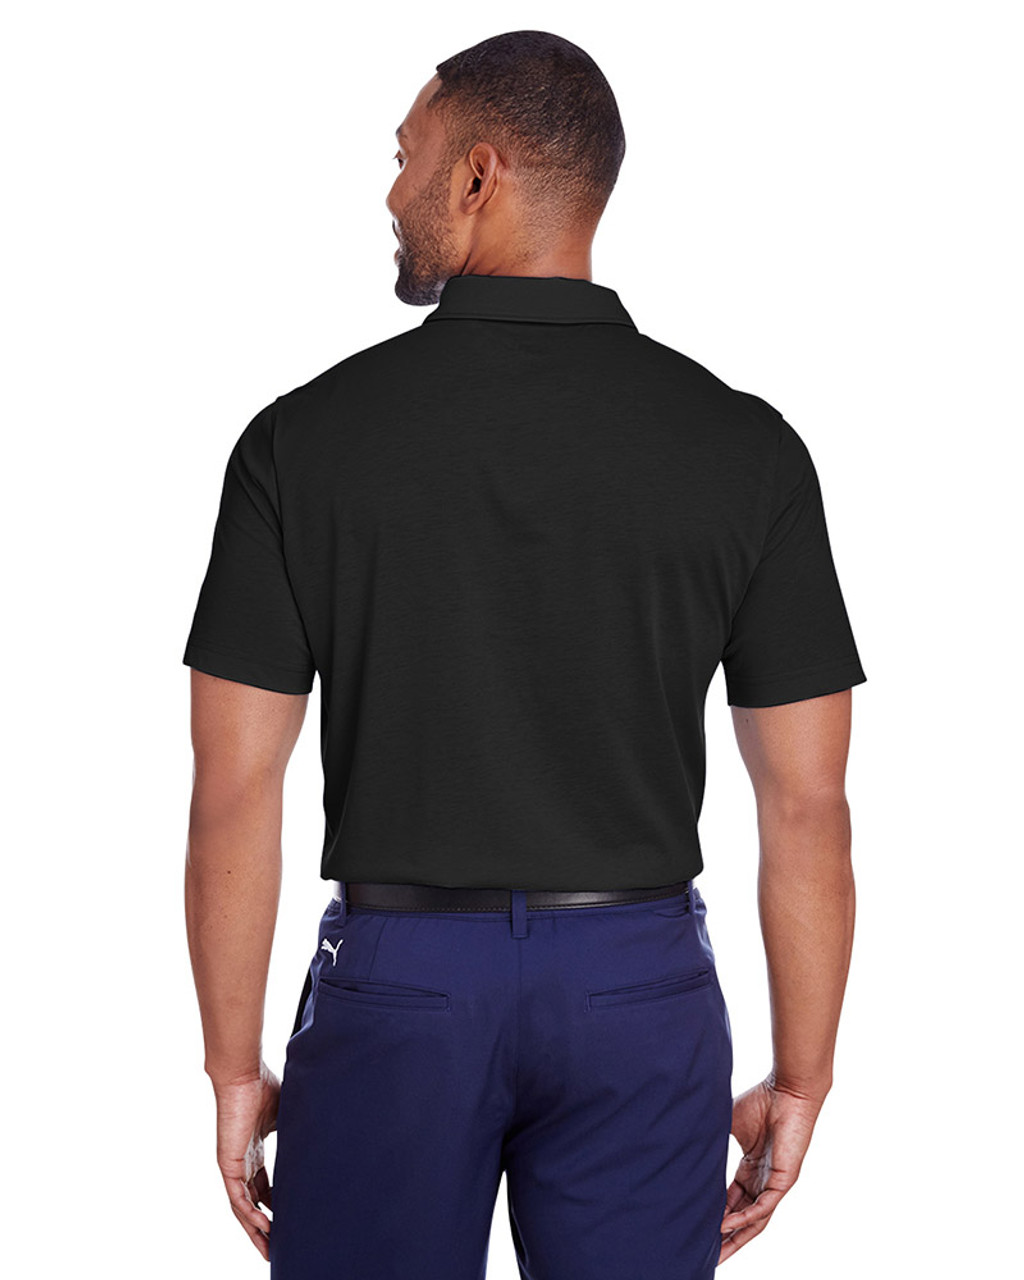 Puma Black - back, 596920 Puma Golf Men's Fusion Polo | Blankclothing.ca